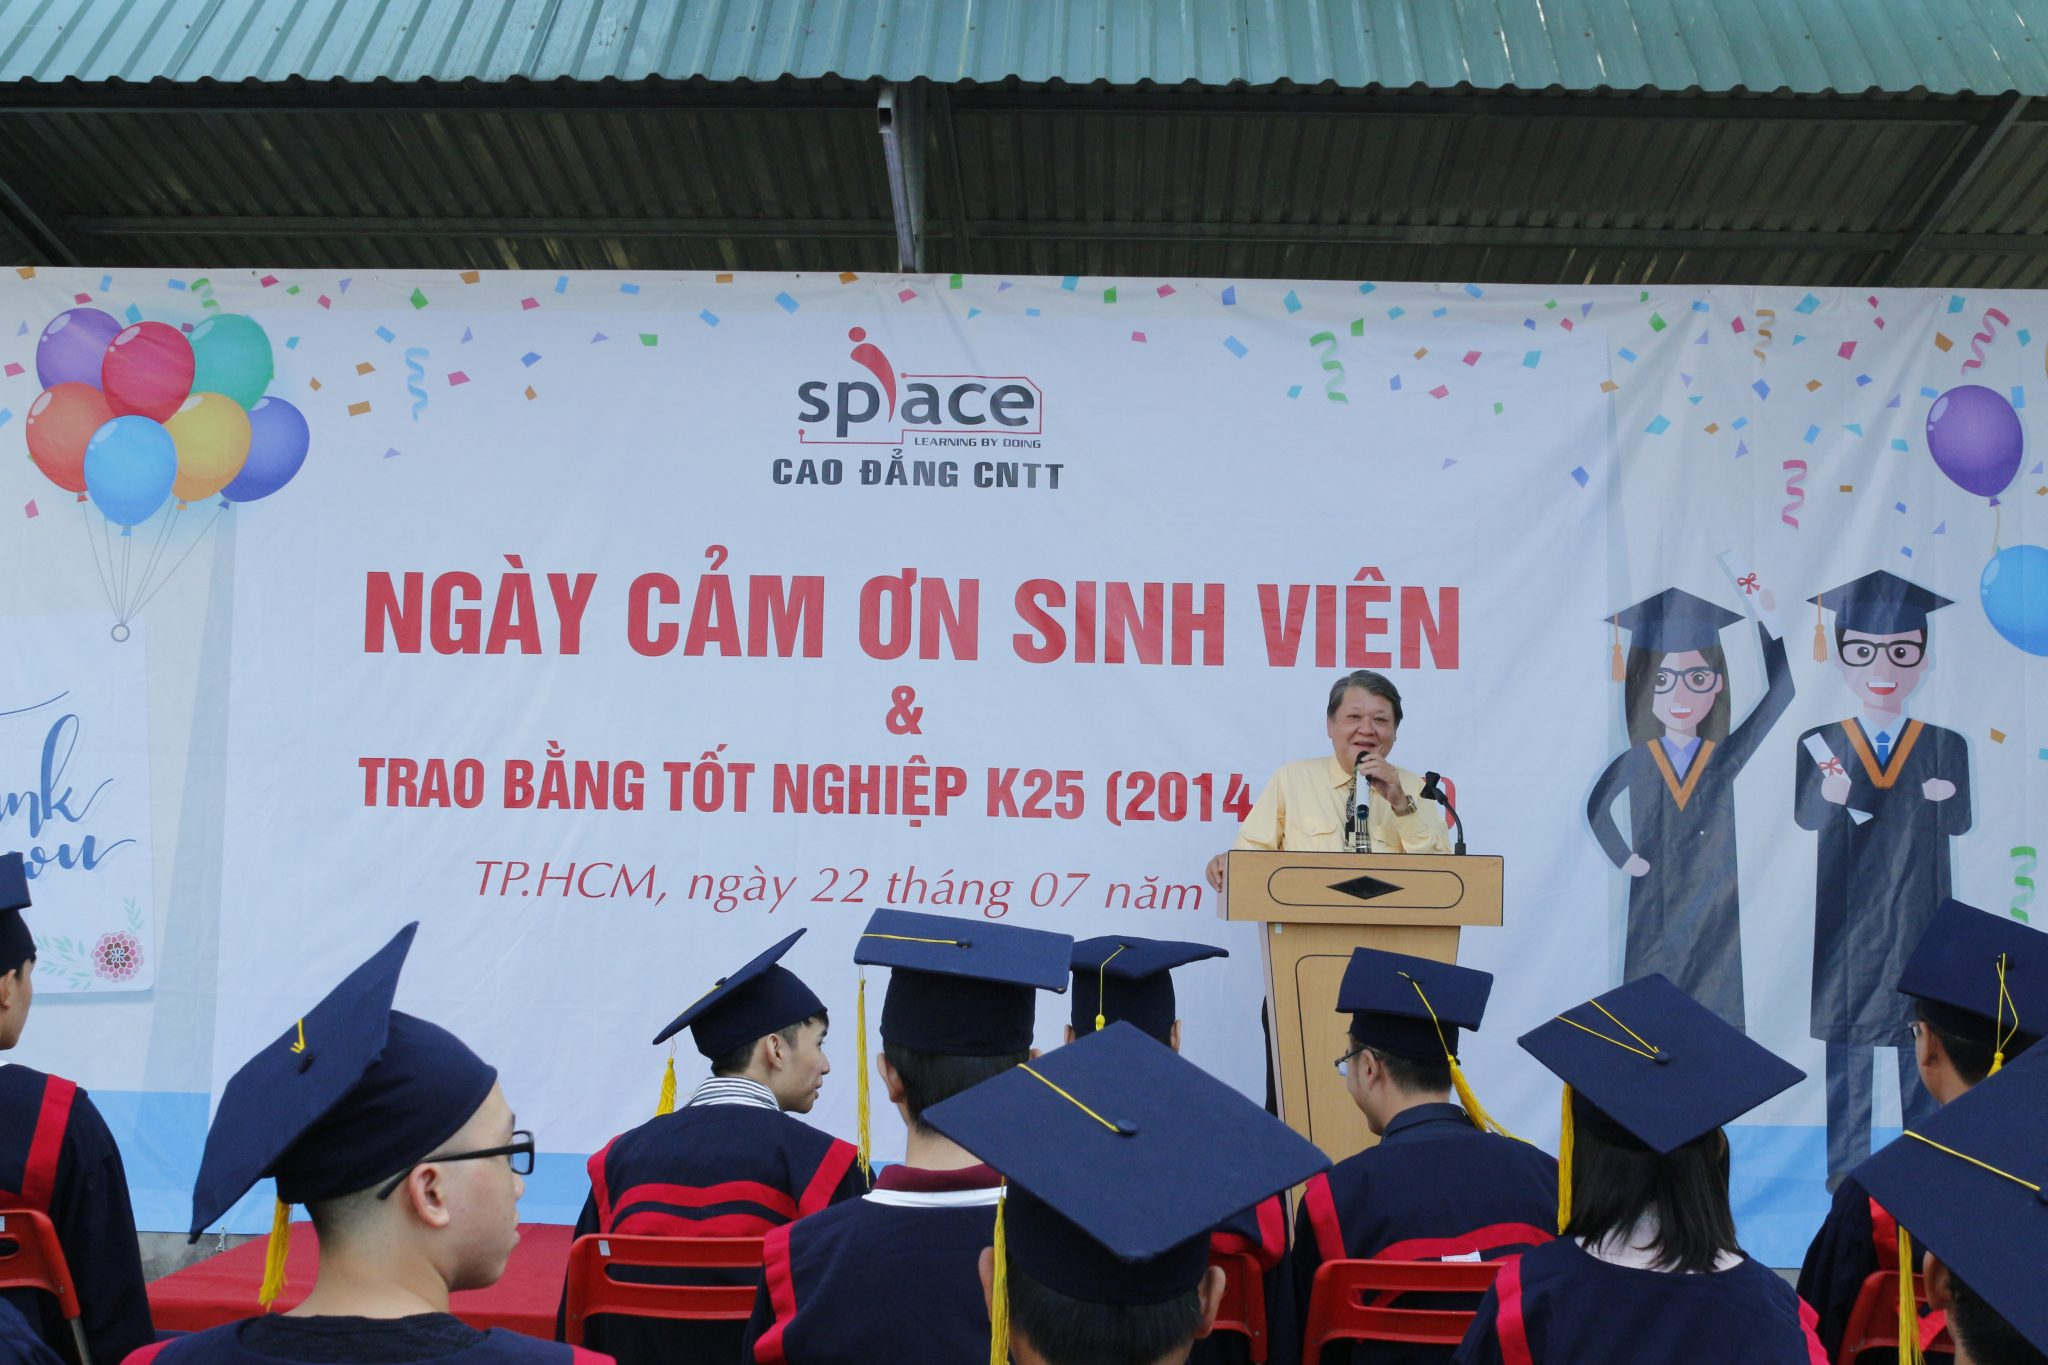 sinh-vien-cong-nghe-thong-tin-voi-cong-nghiep-4-0